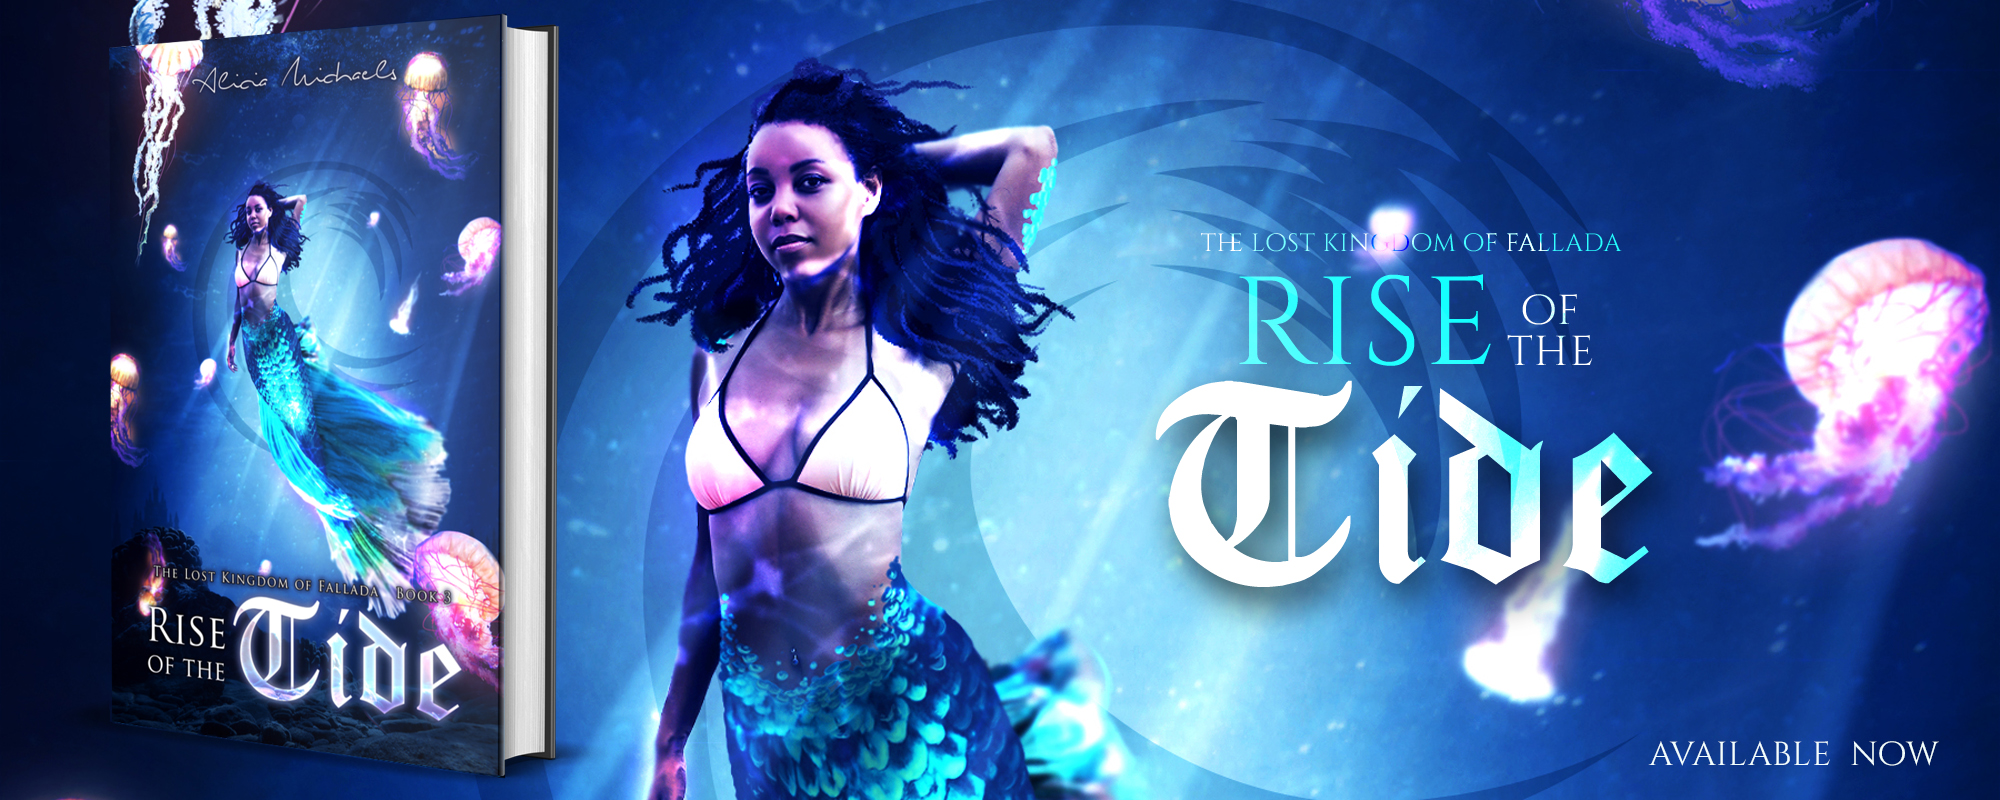 Rise of the Tide by Alicia Michaels, available now